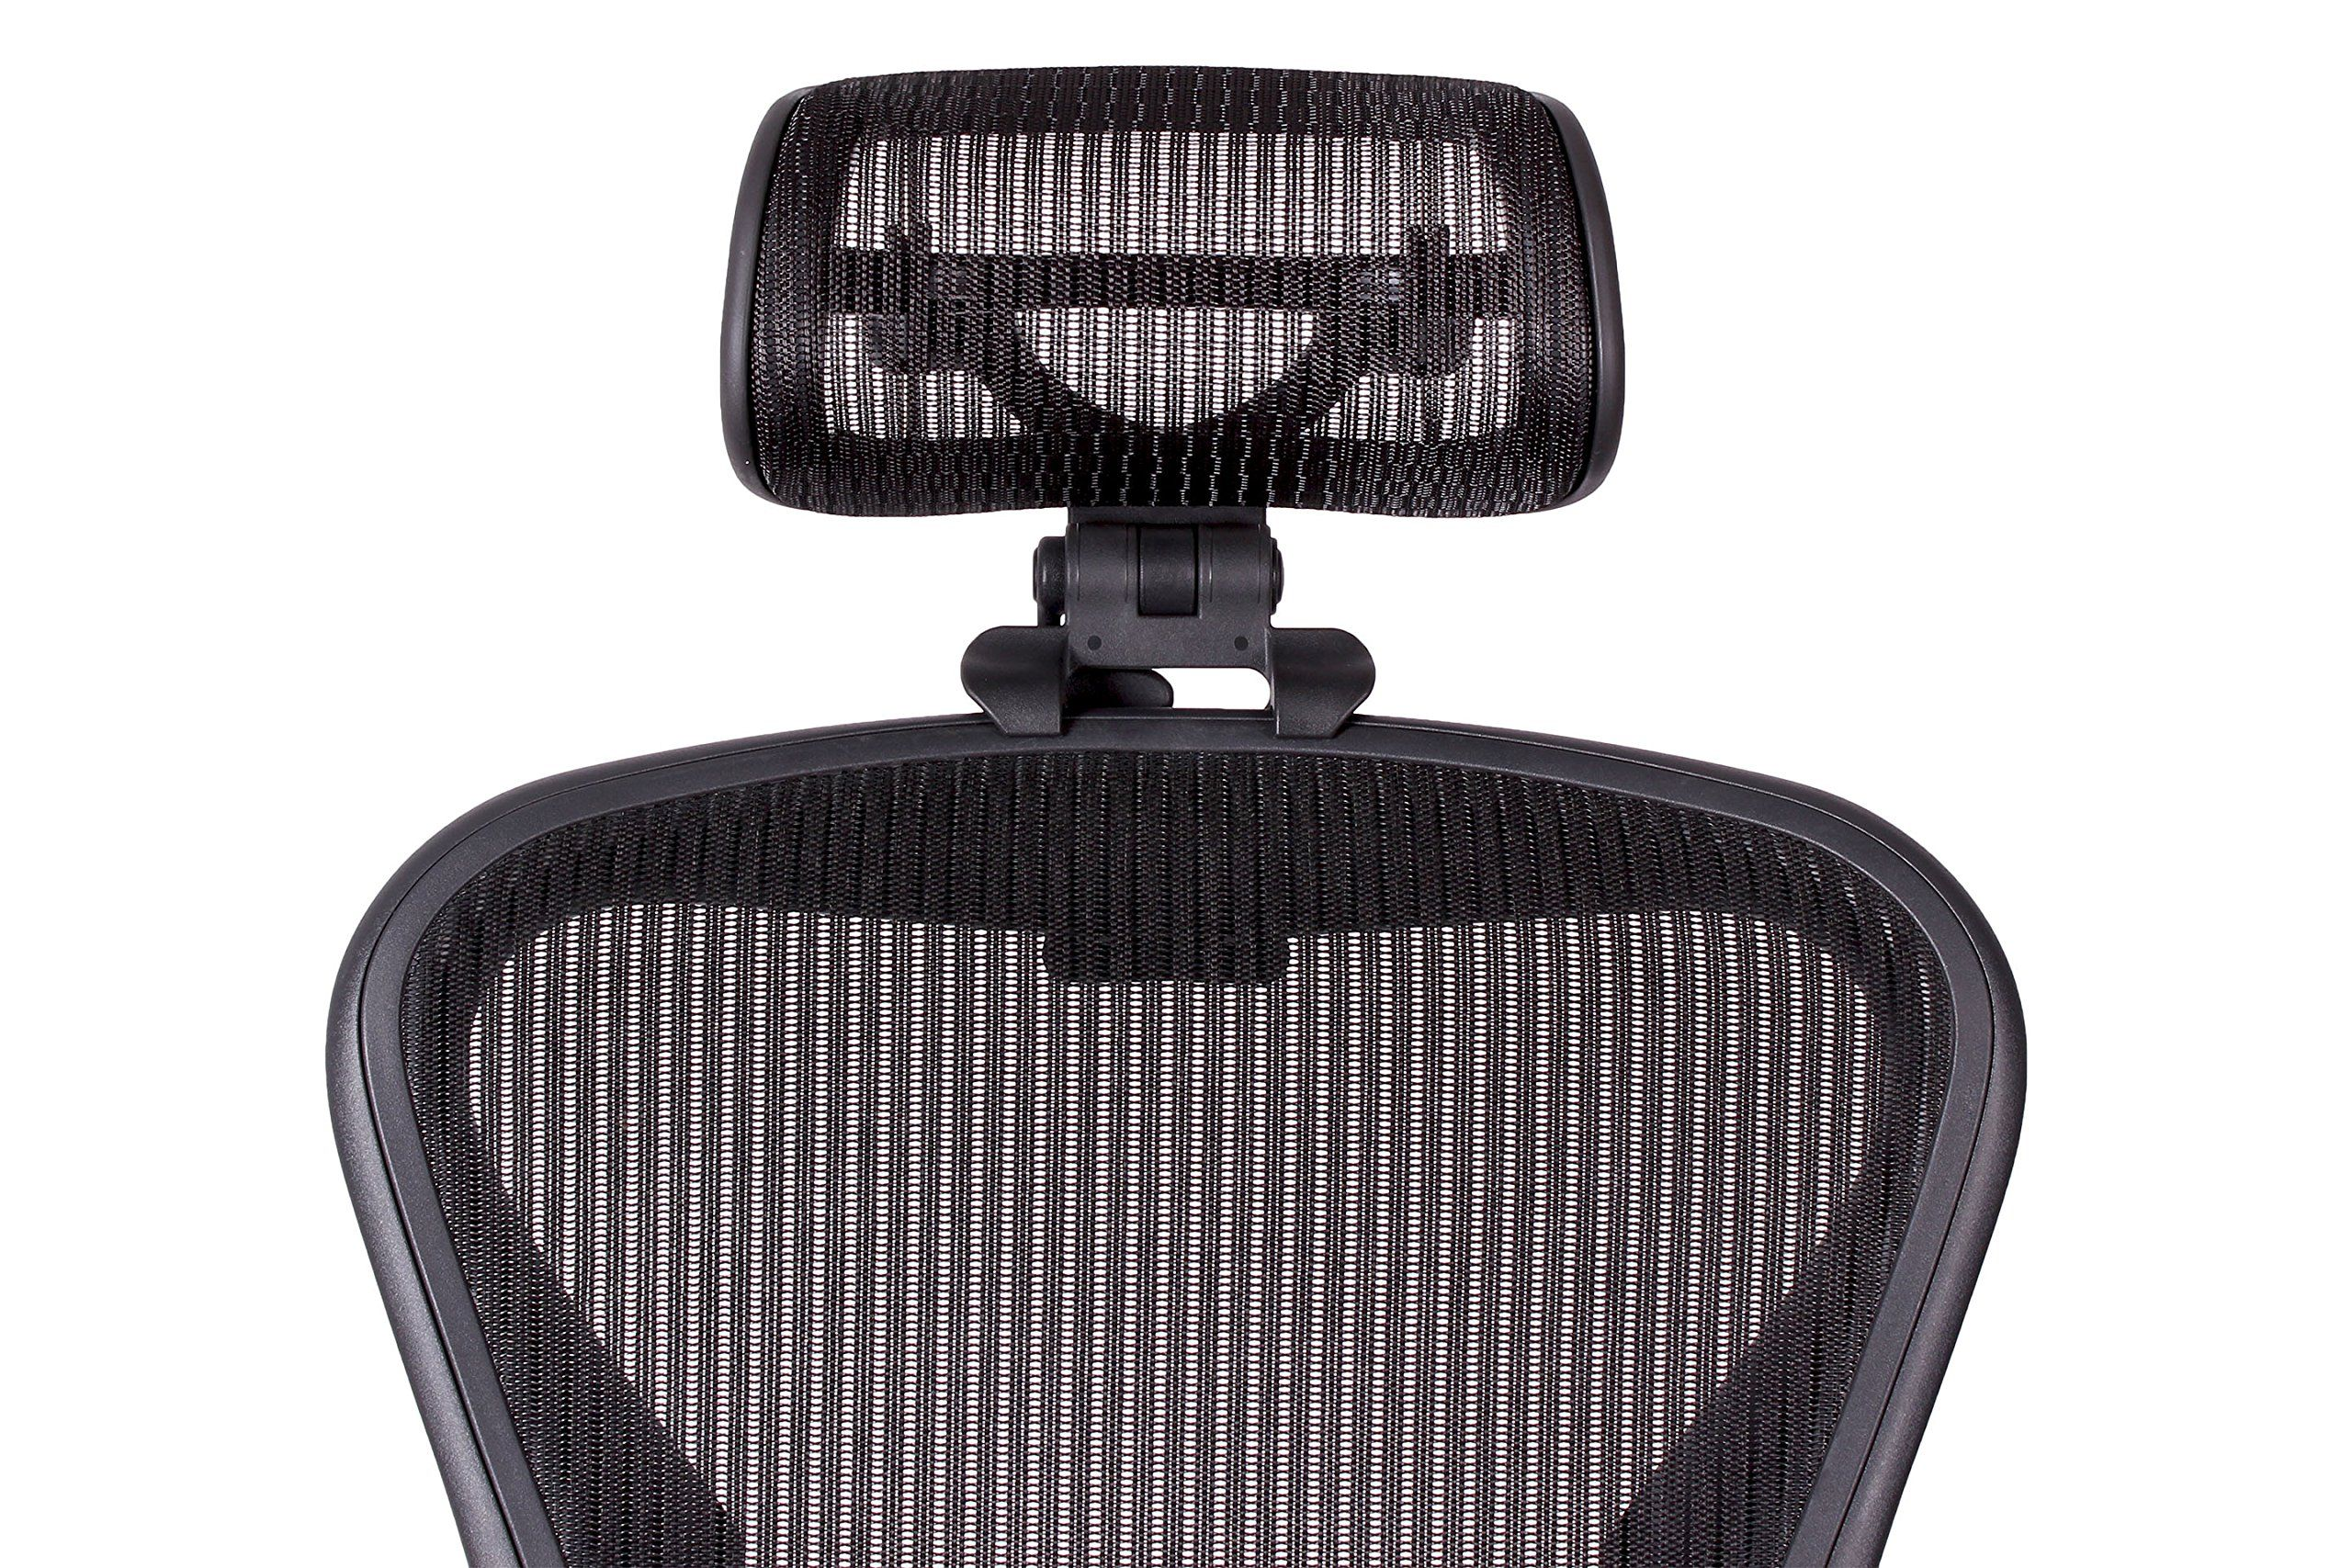 Headrest For Classic Herman Miller Aeron Chair H3 Carbon By Engineered Now Colors Match Classic Aeron Chairs Headrest The Originals Herman Miller Aeron Chair